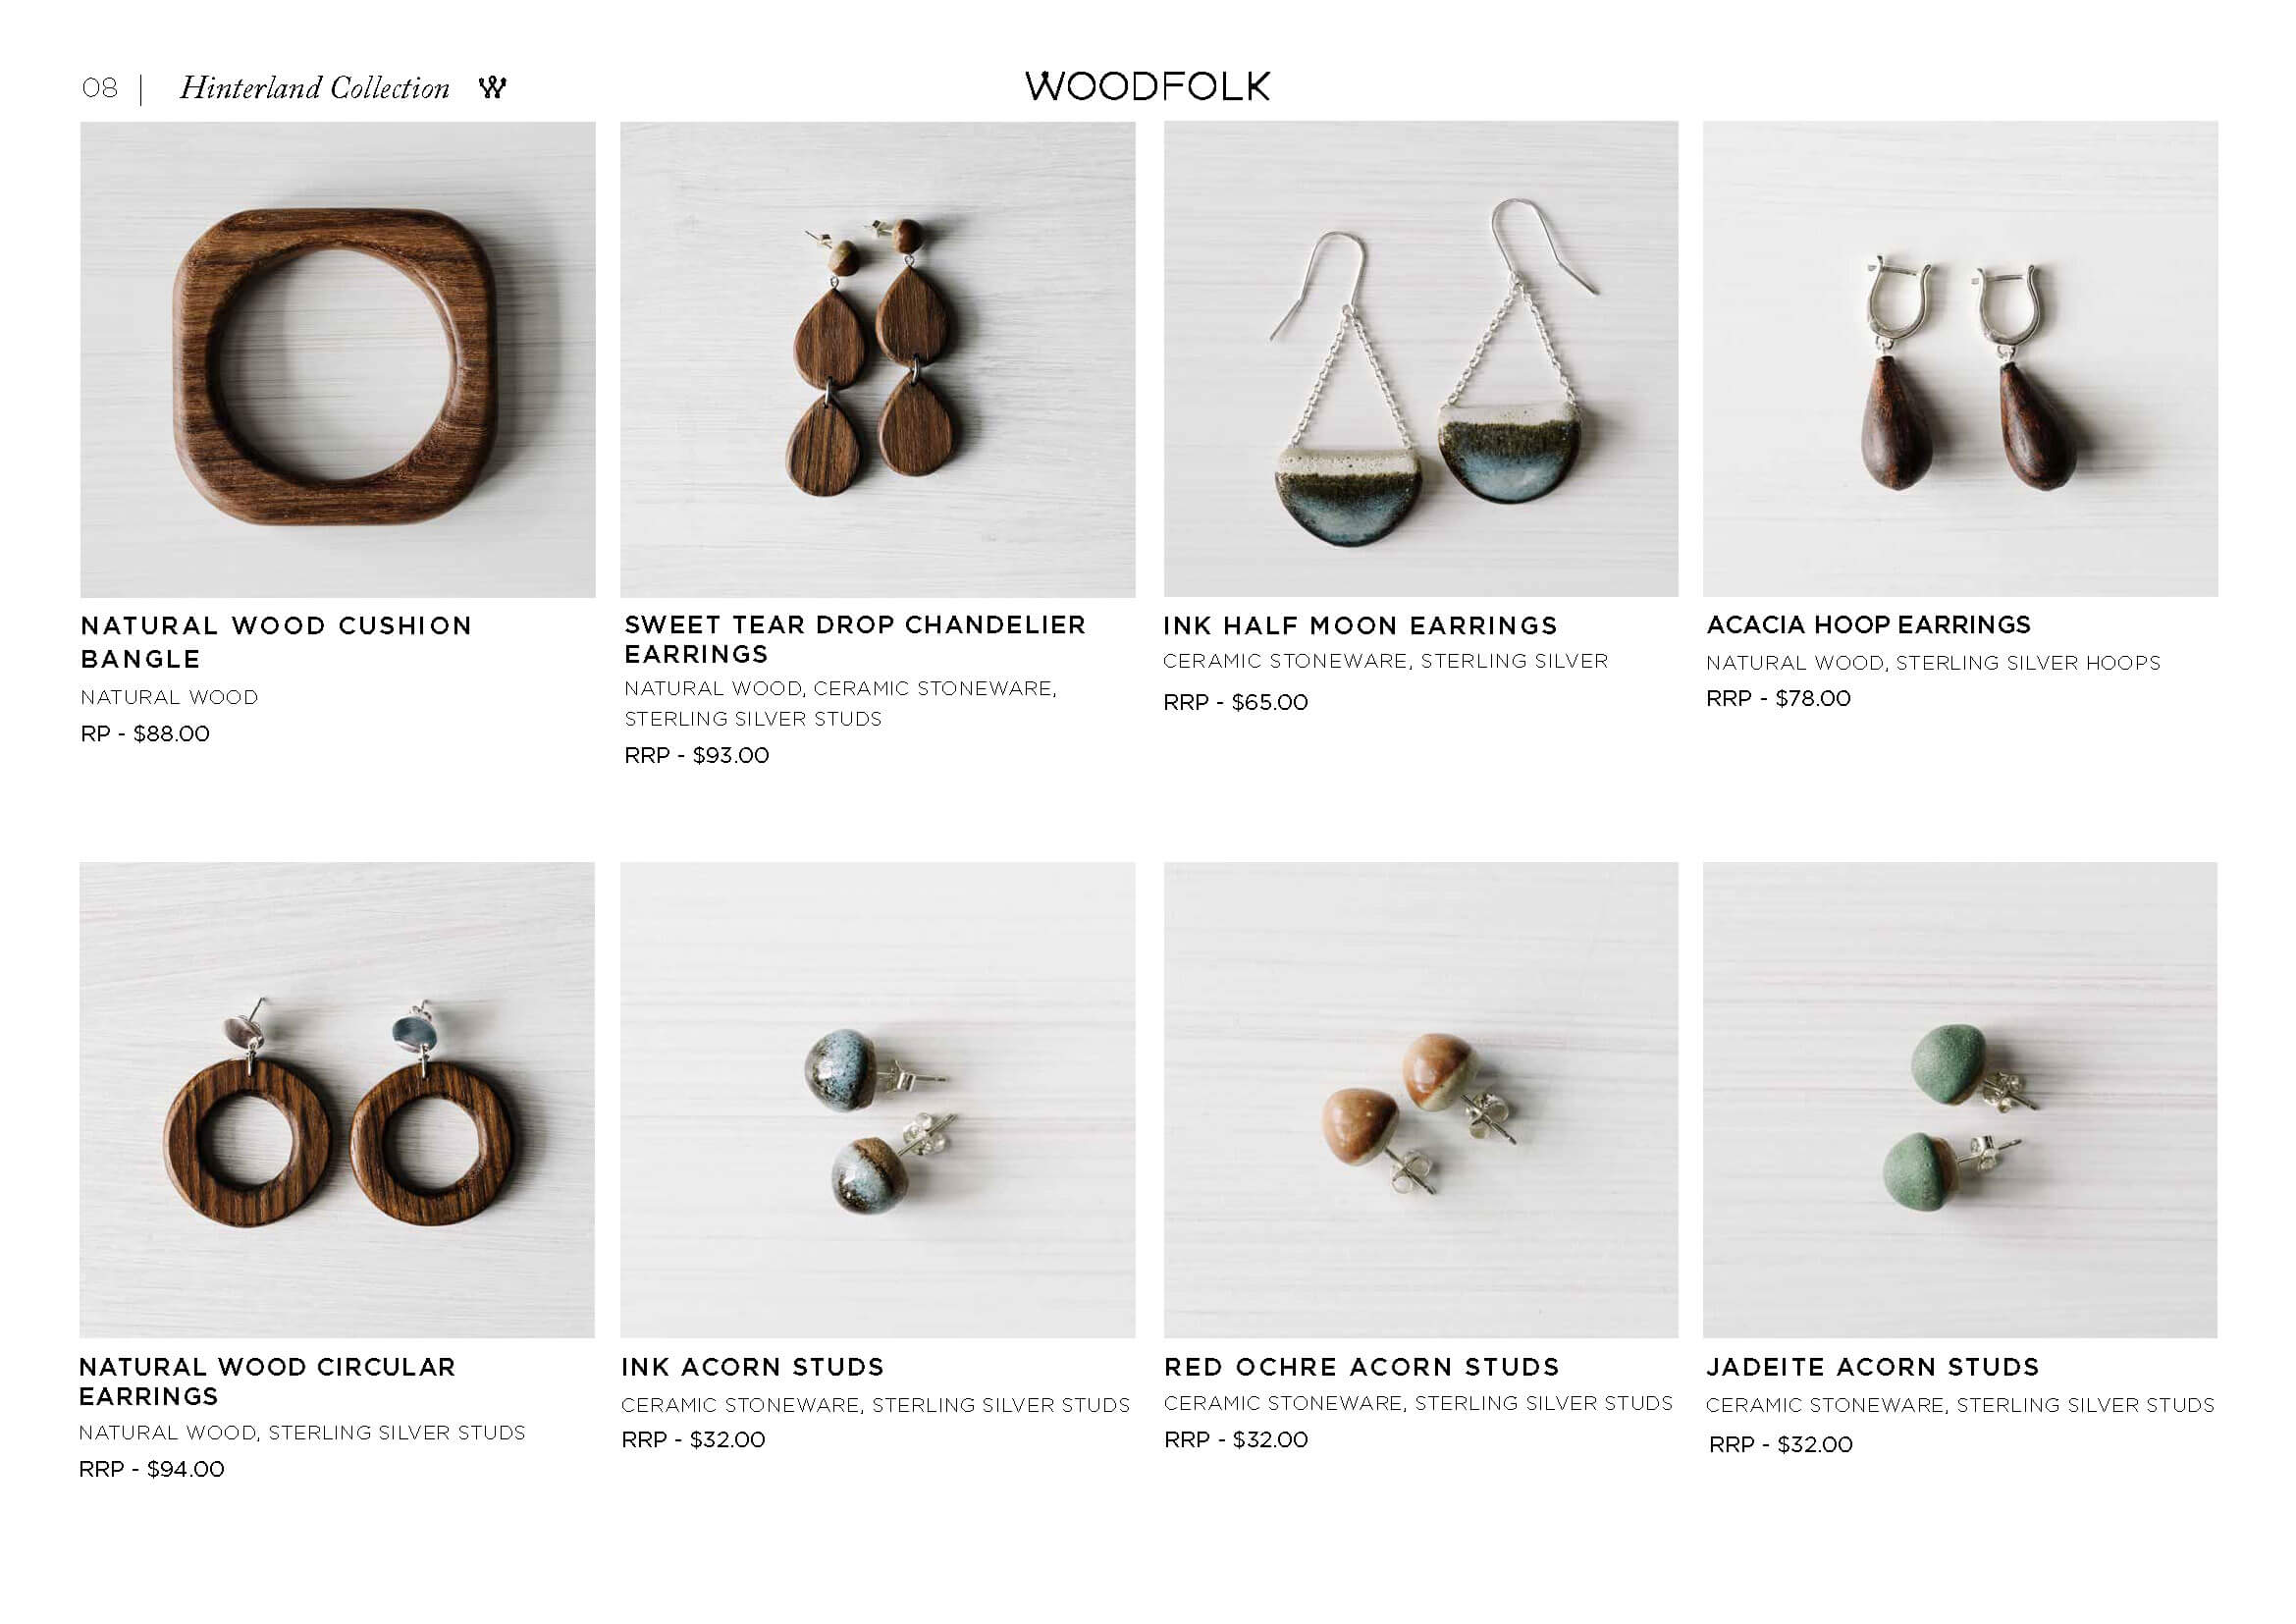 Woodfolk-Catalogue-2019_Web_Public_Page_09.jpg